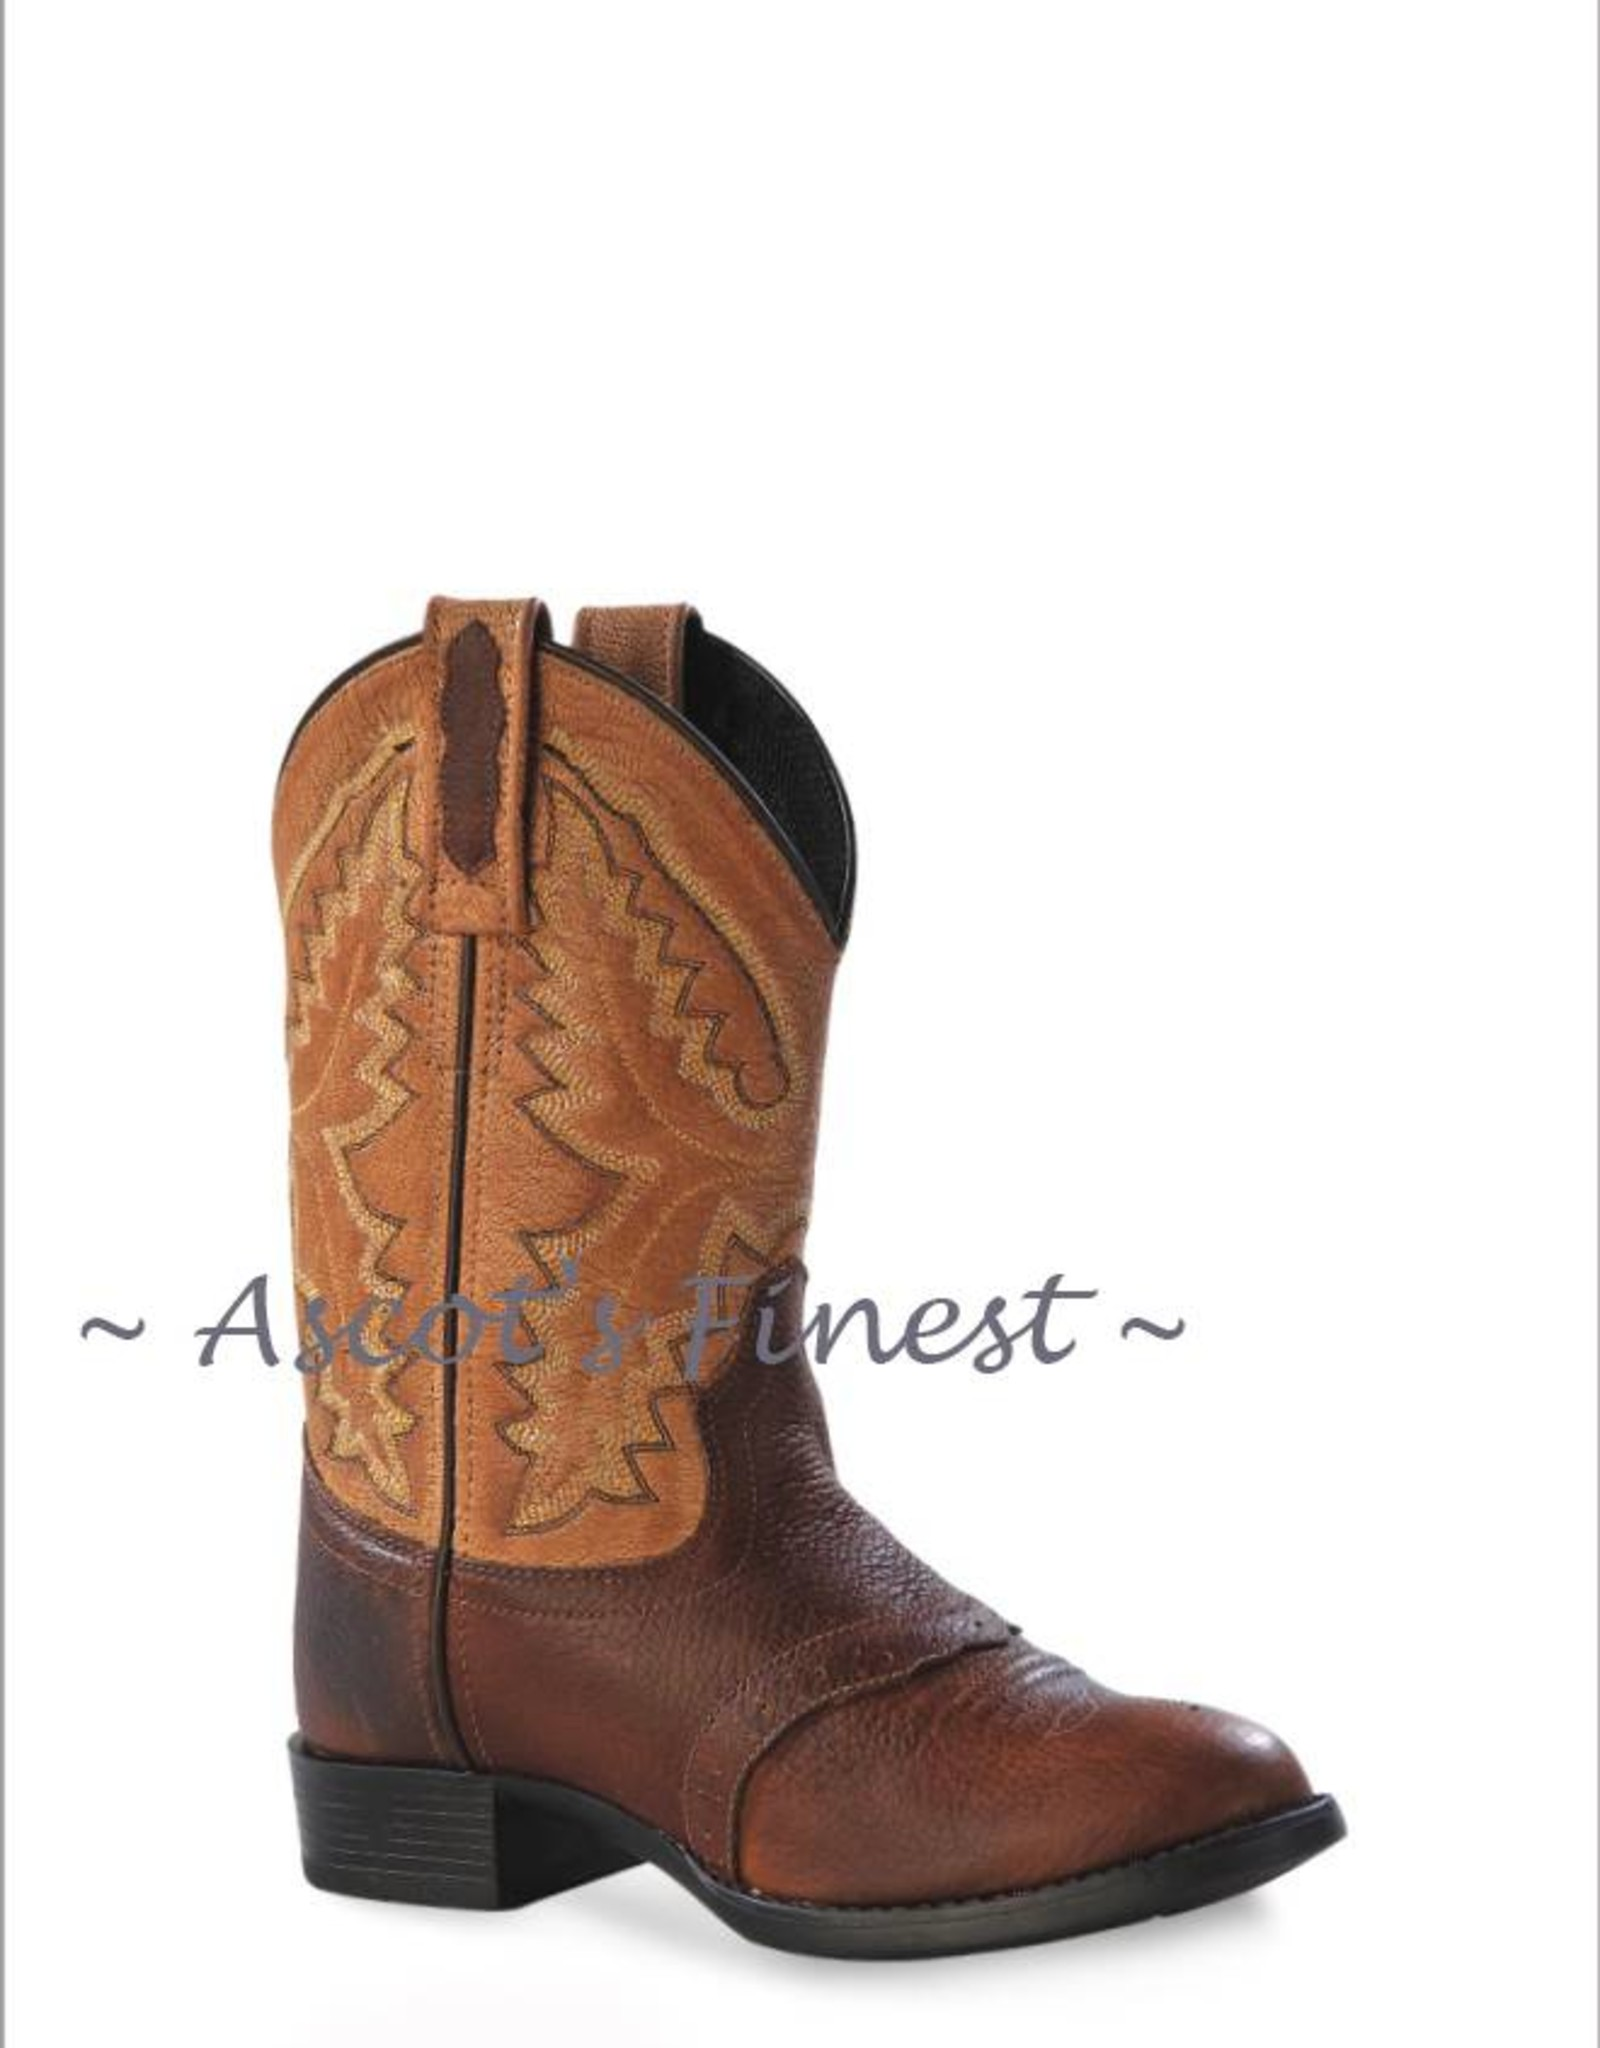 Old West Old West Taos - Maat 35 t/m 39